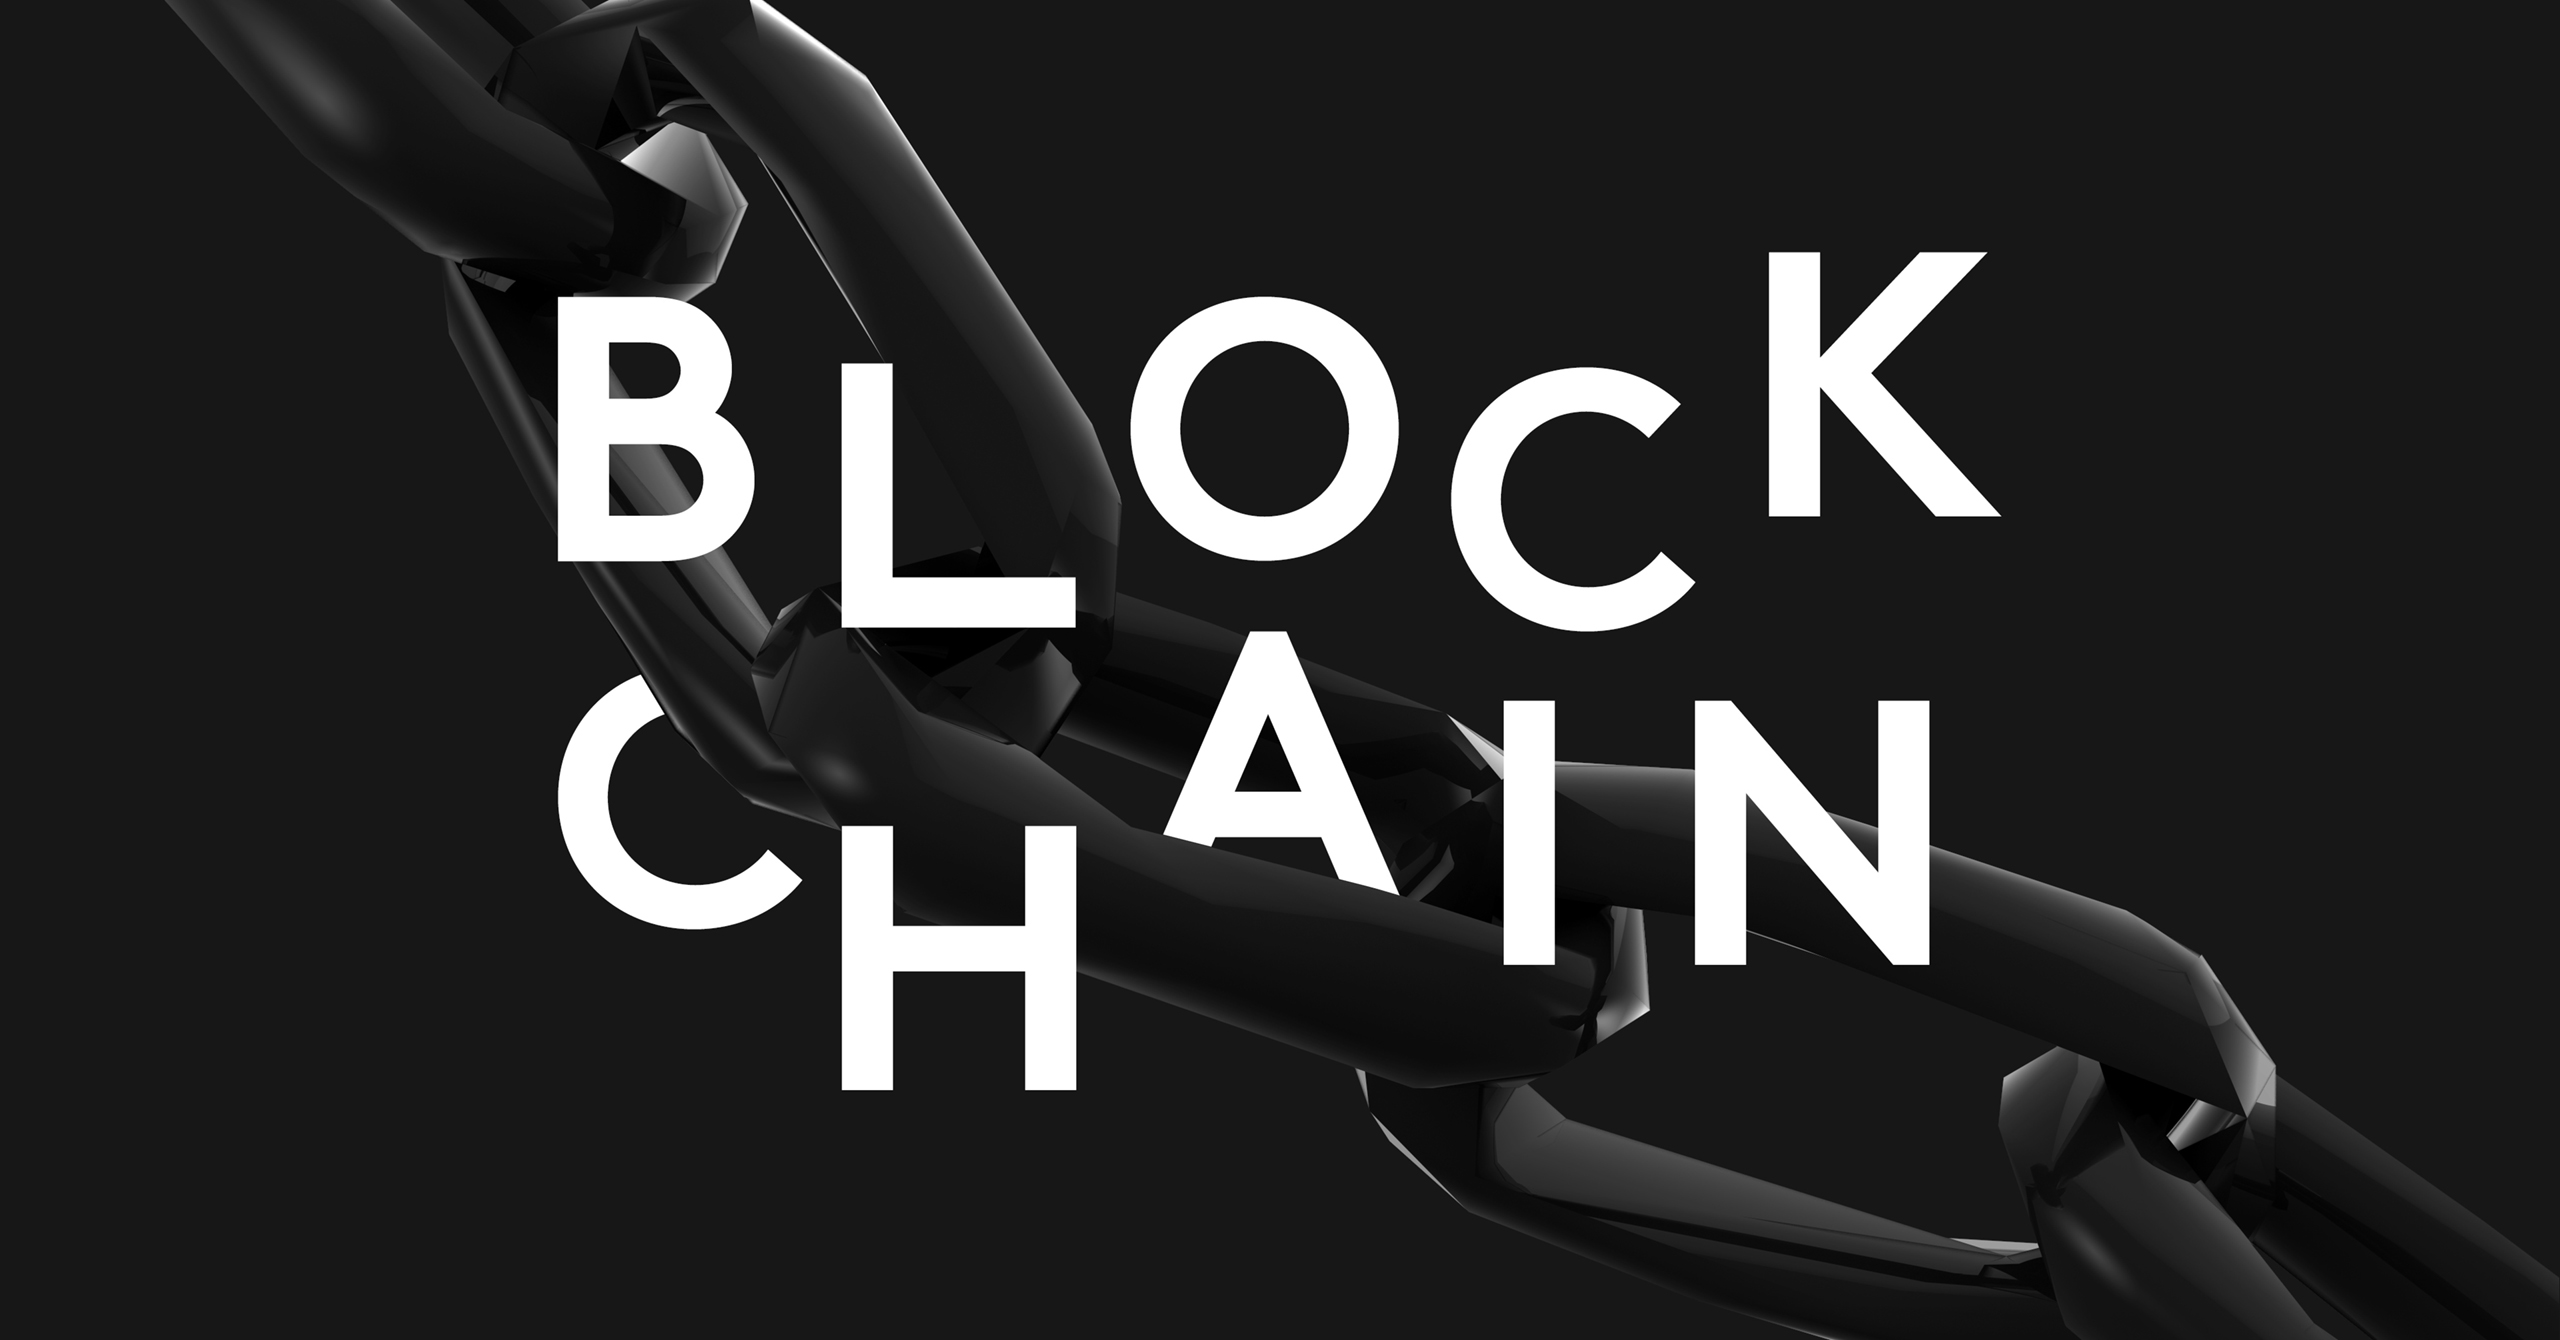 Block Chain abstraction